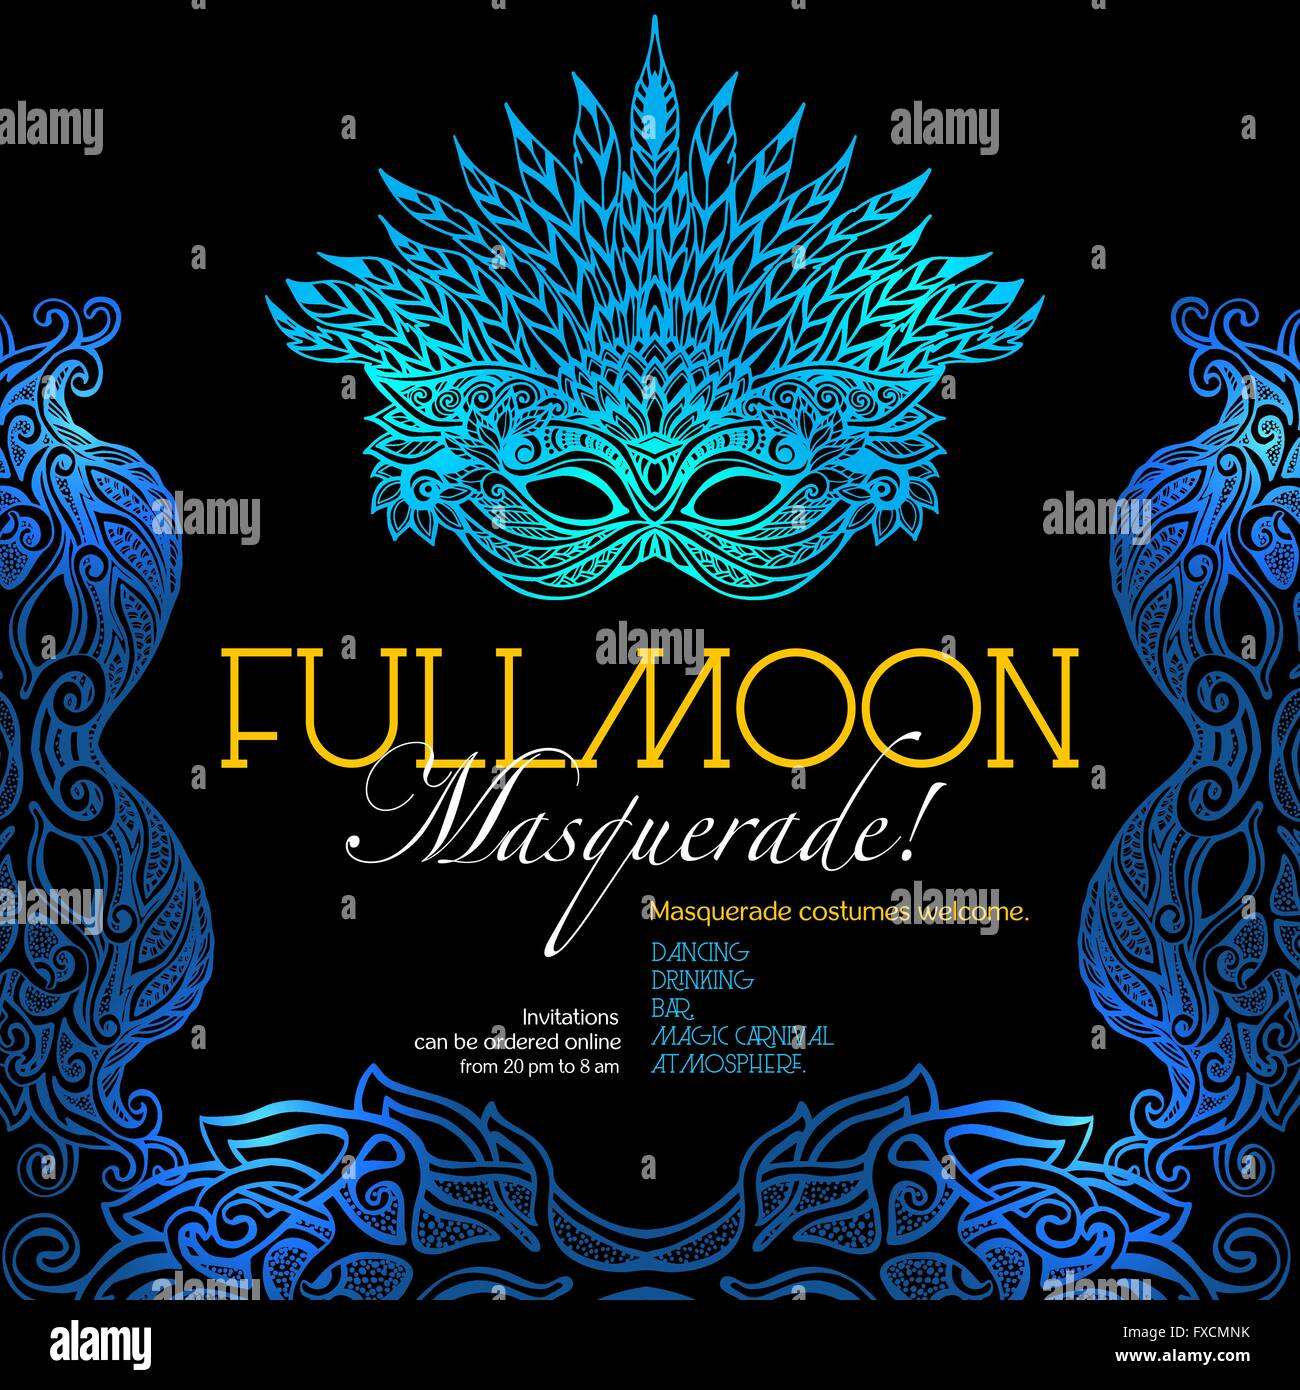 Masquerade Ball Poster Stock Vector Art Illustration Image